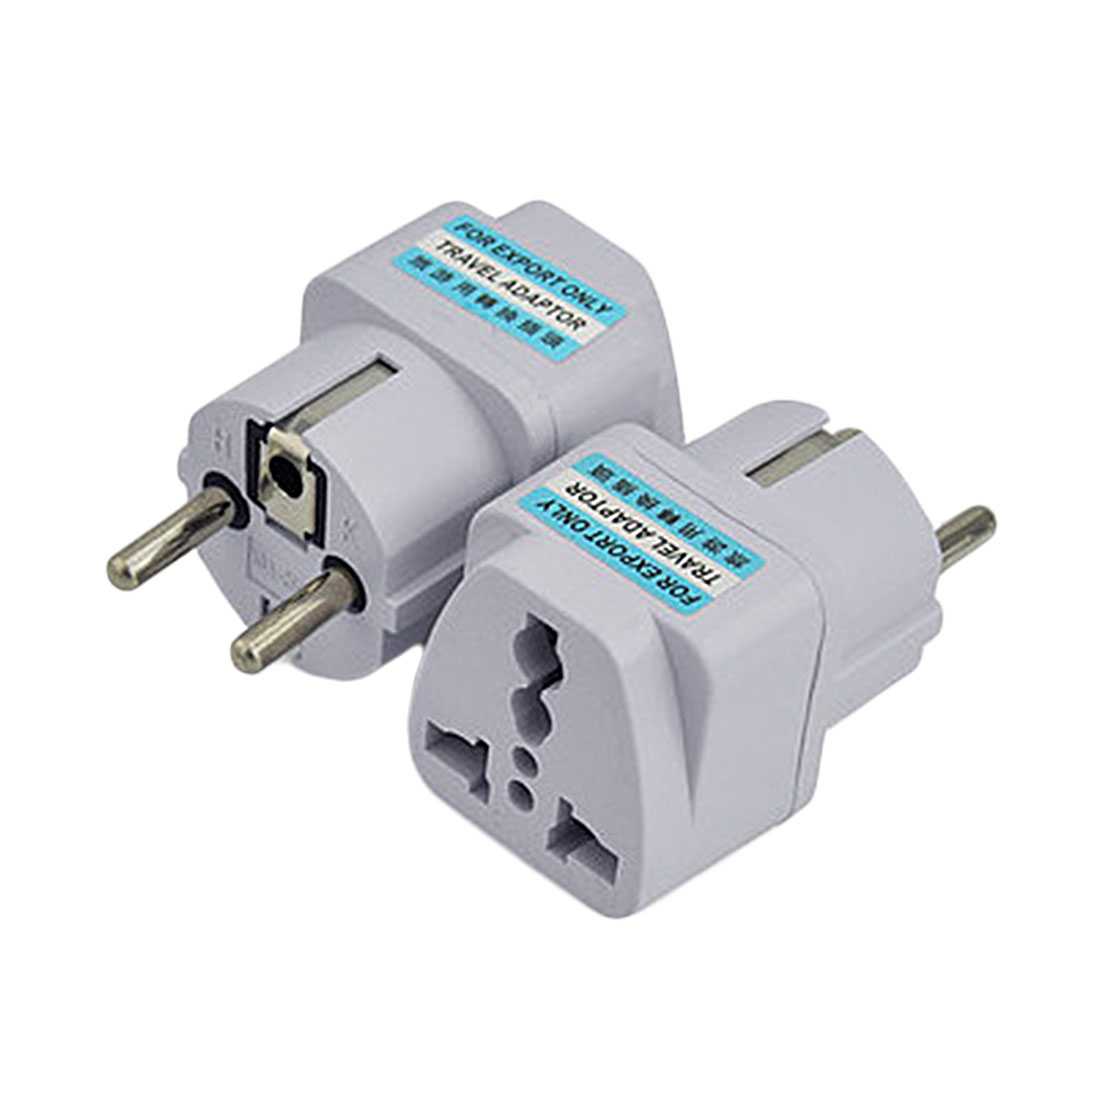 MAIF New Hot Sale Universal UK US AU to EU AC Power Plug Universal Travel Charger Adapter Converter